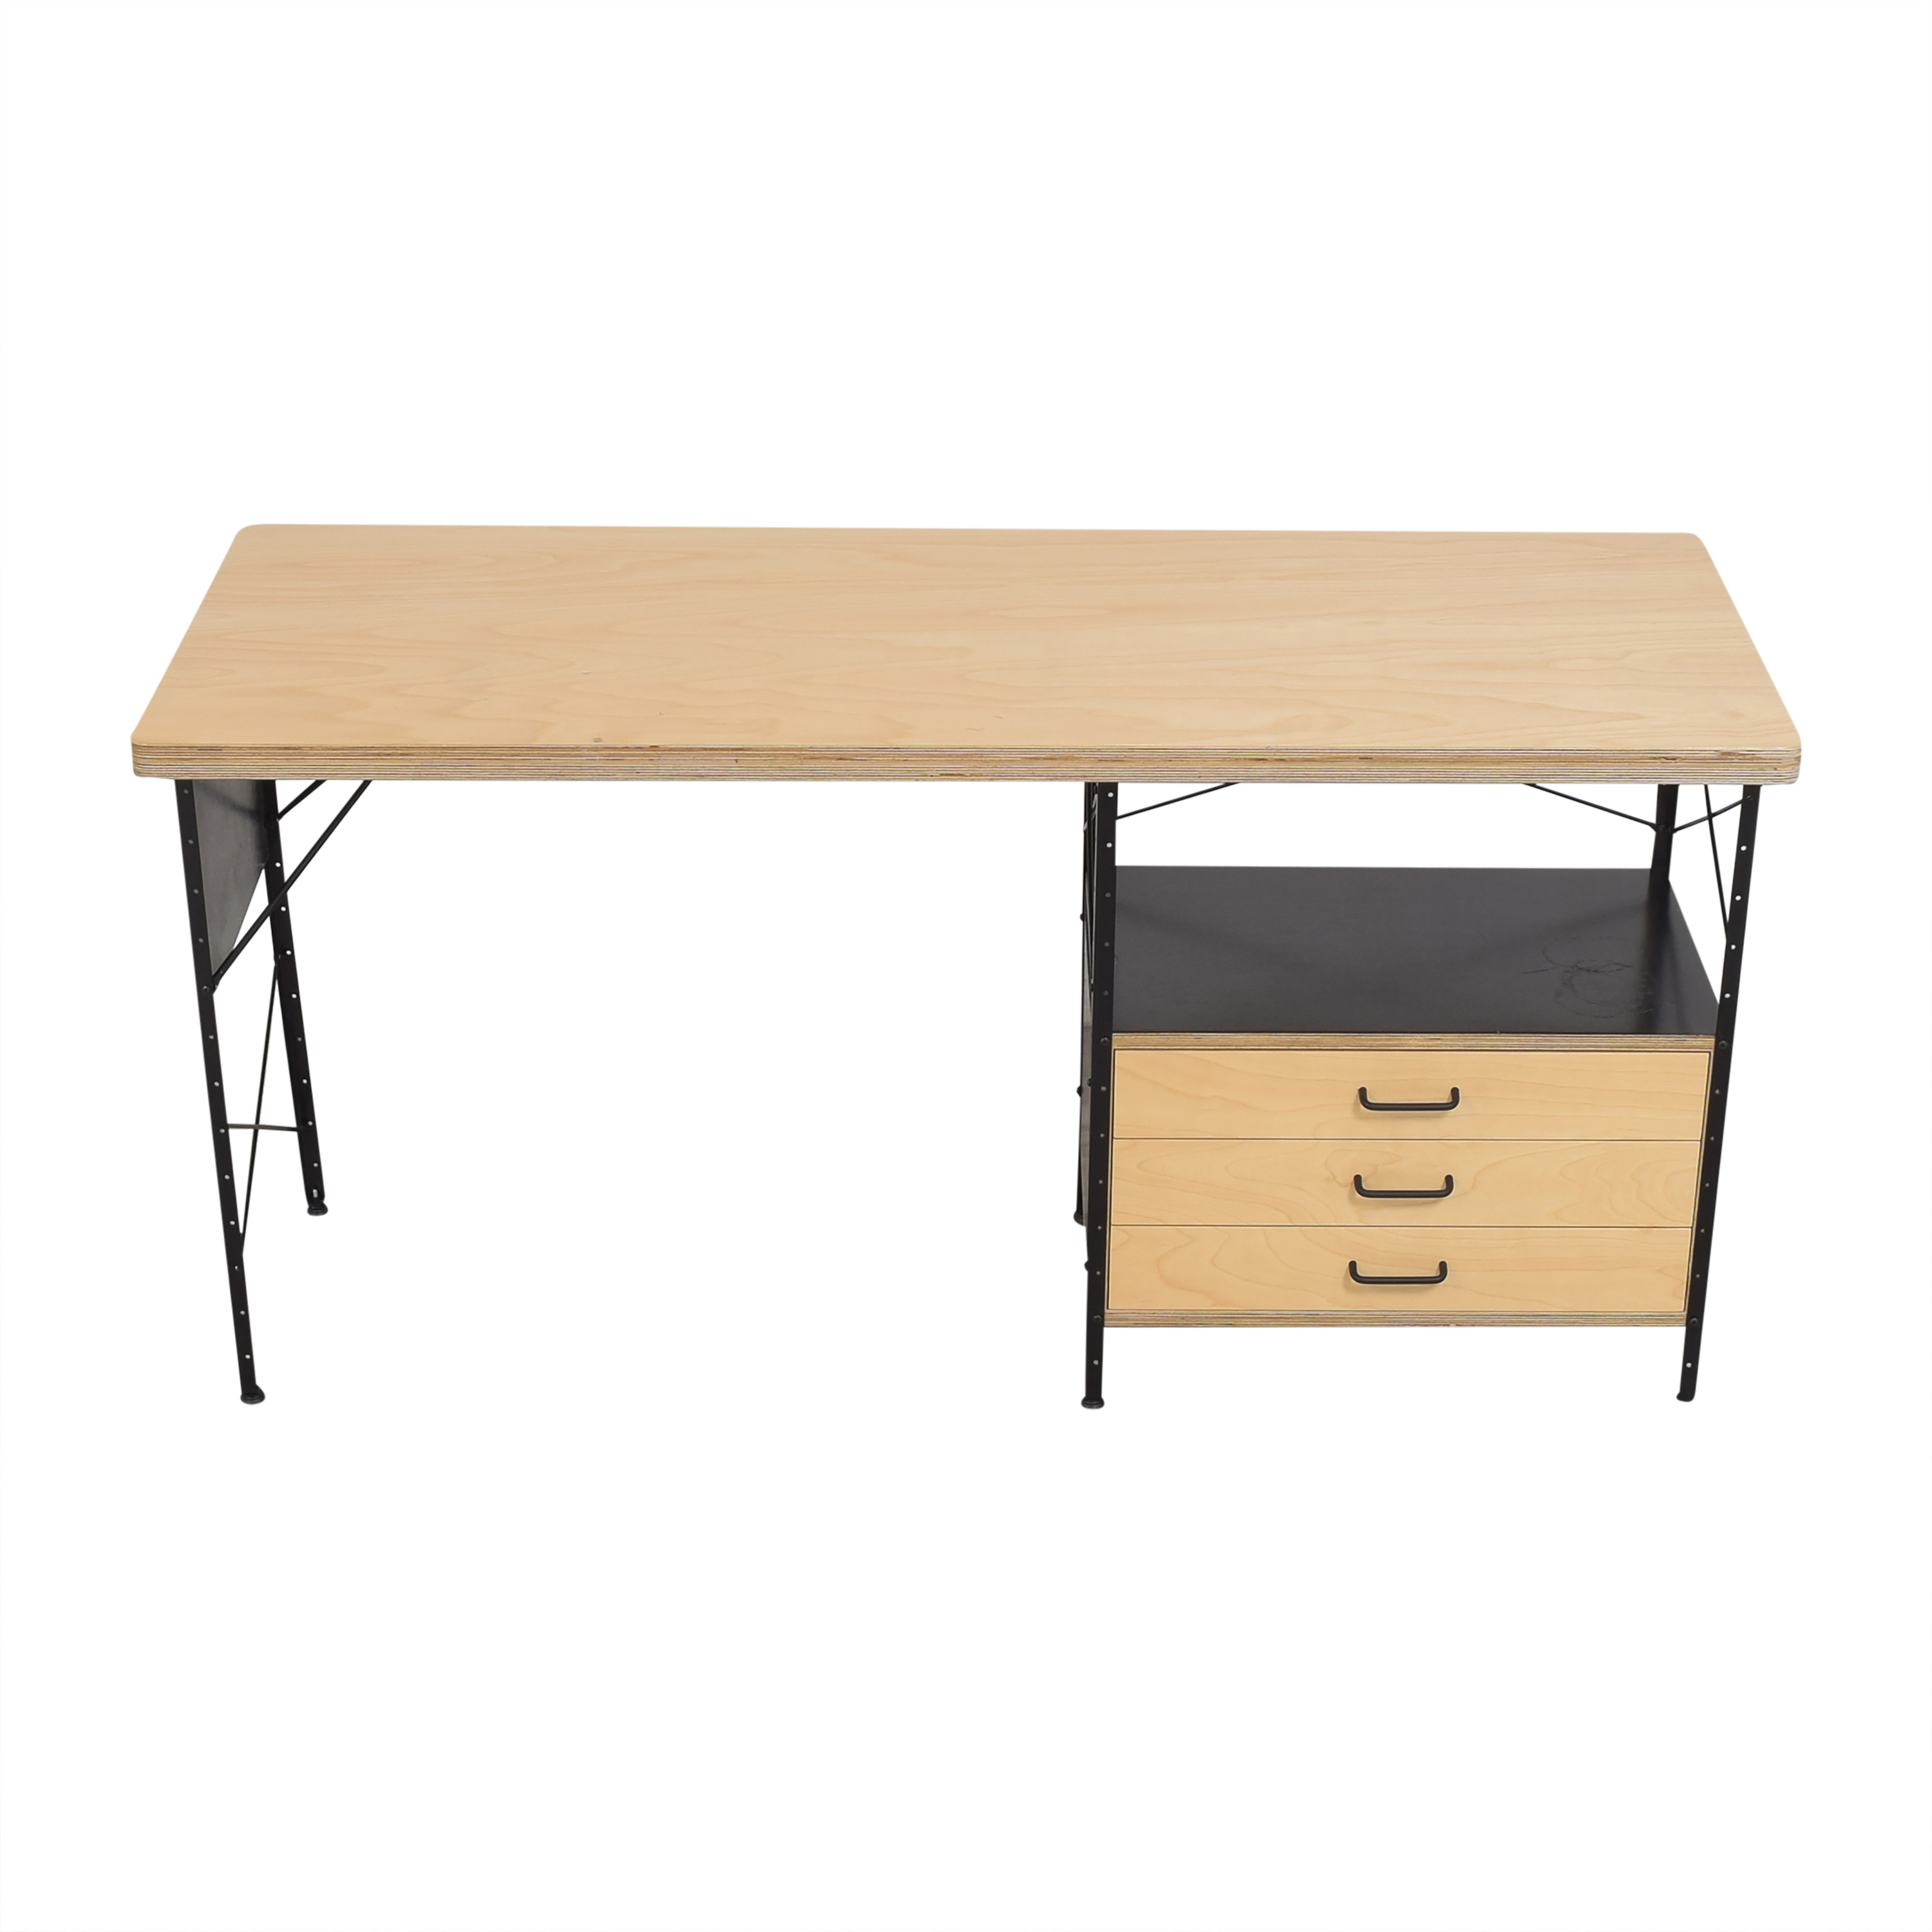 Modernica Modernica Case Study Furniture Desk with 3 Drawers for sale